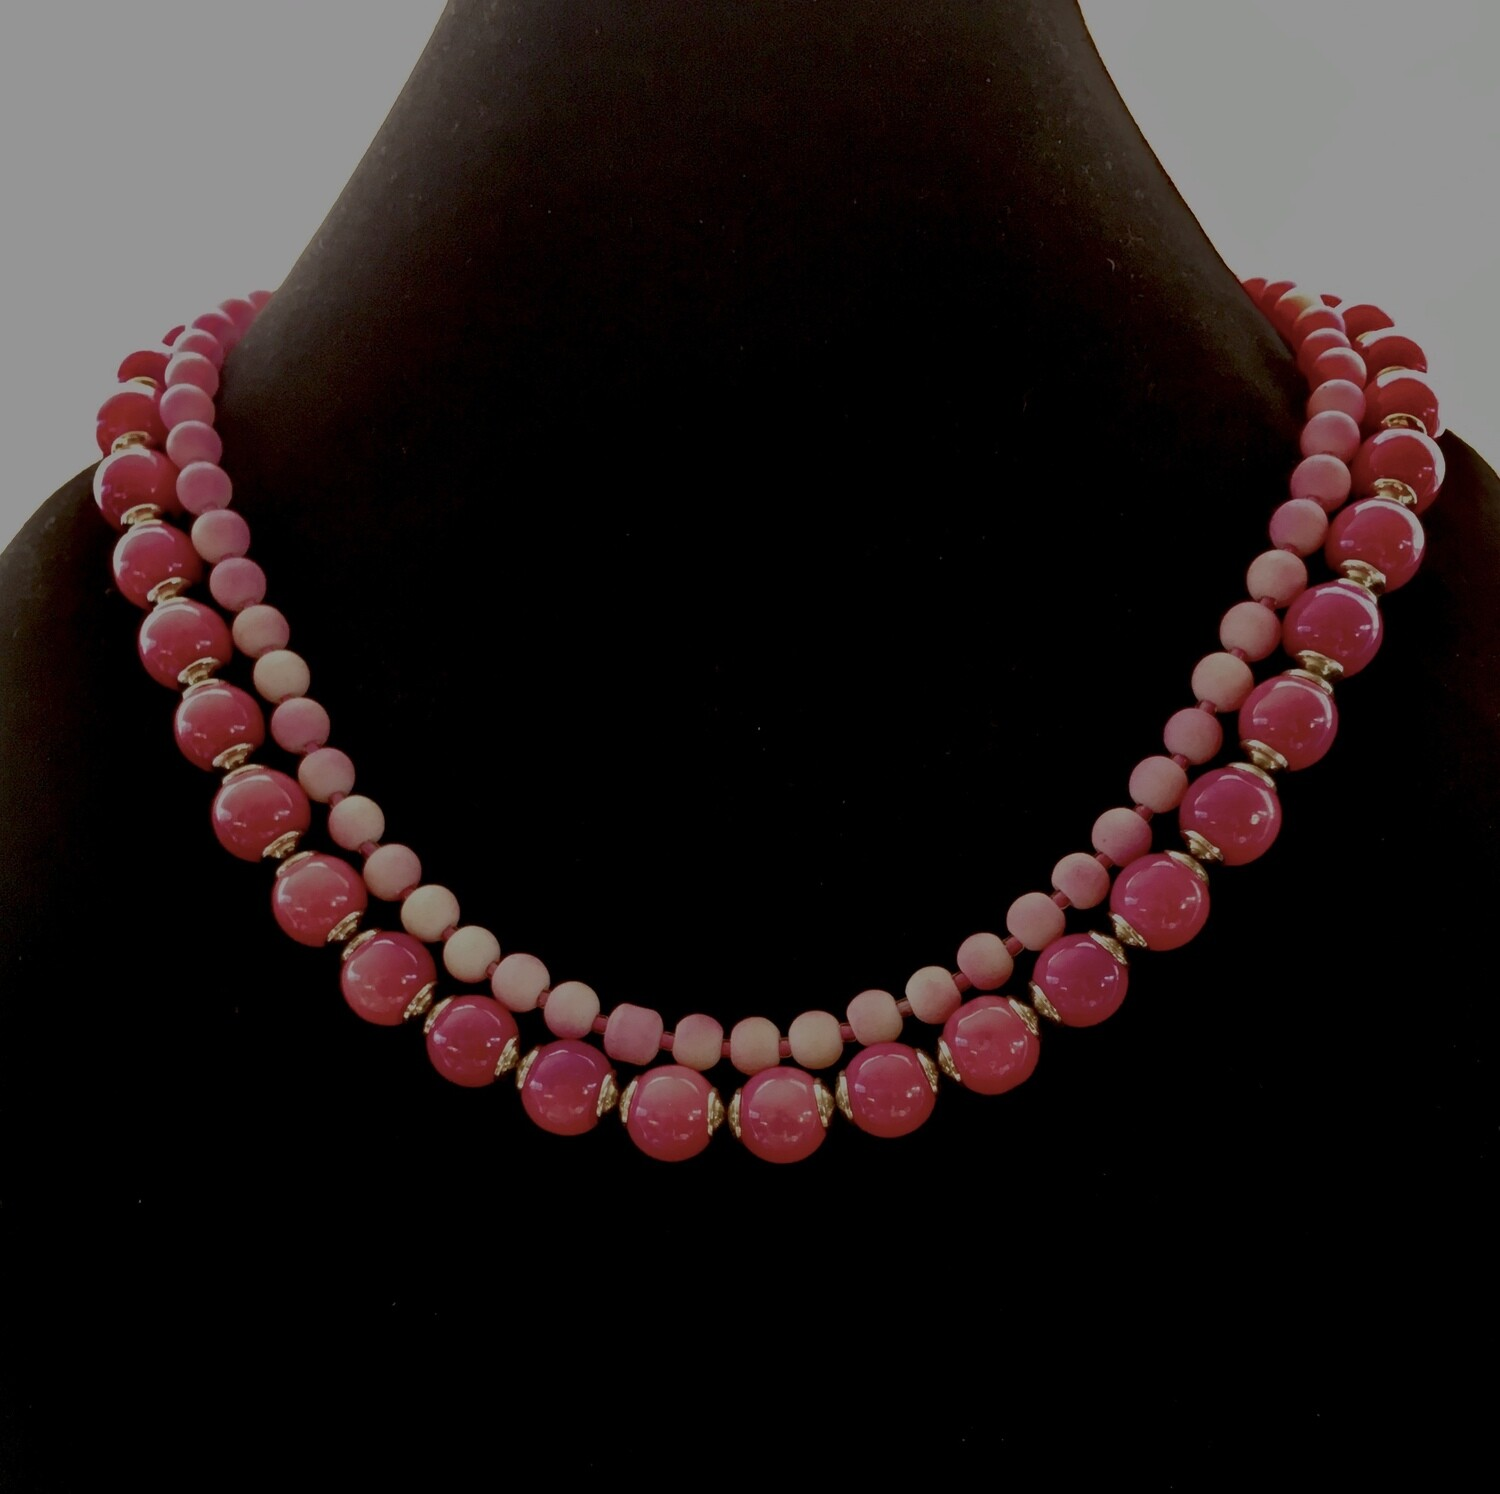 2 strands pink beads necklace with silver spacers